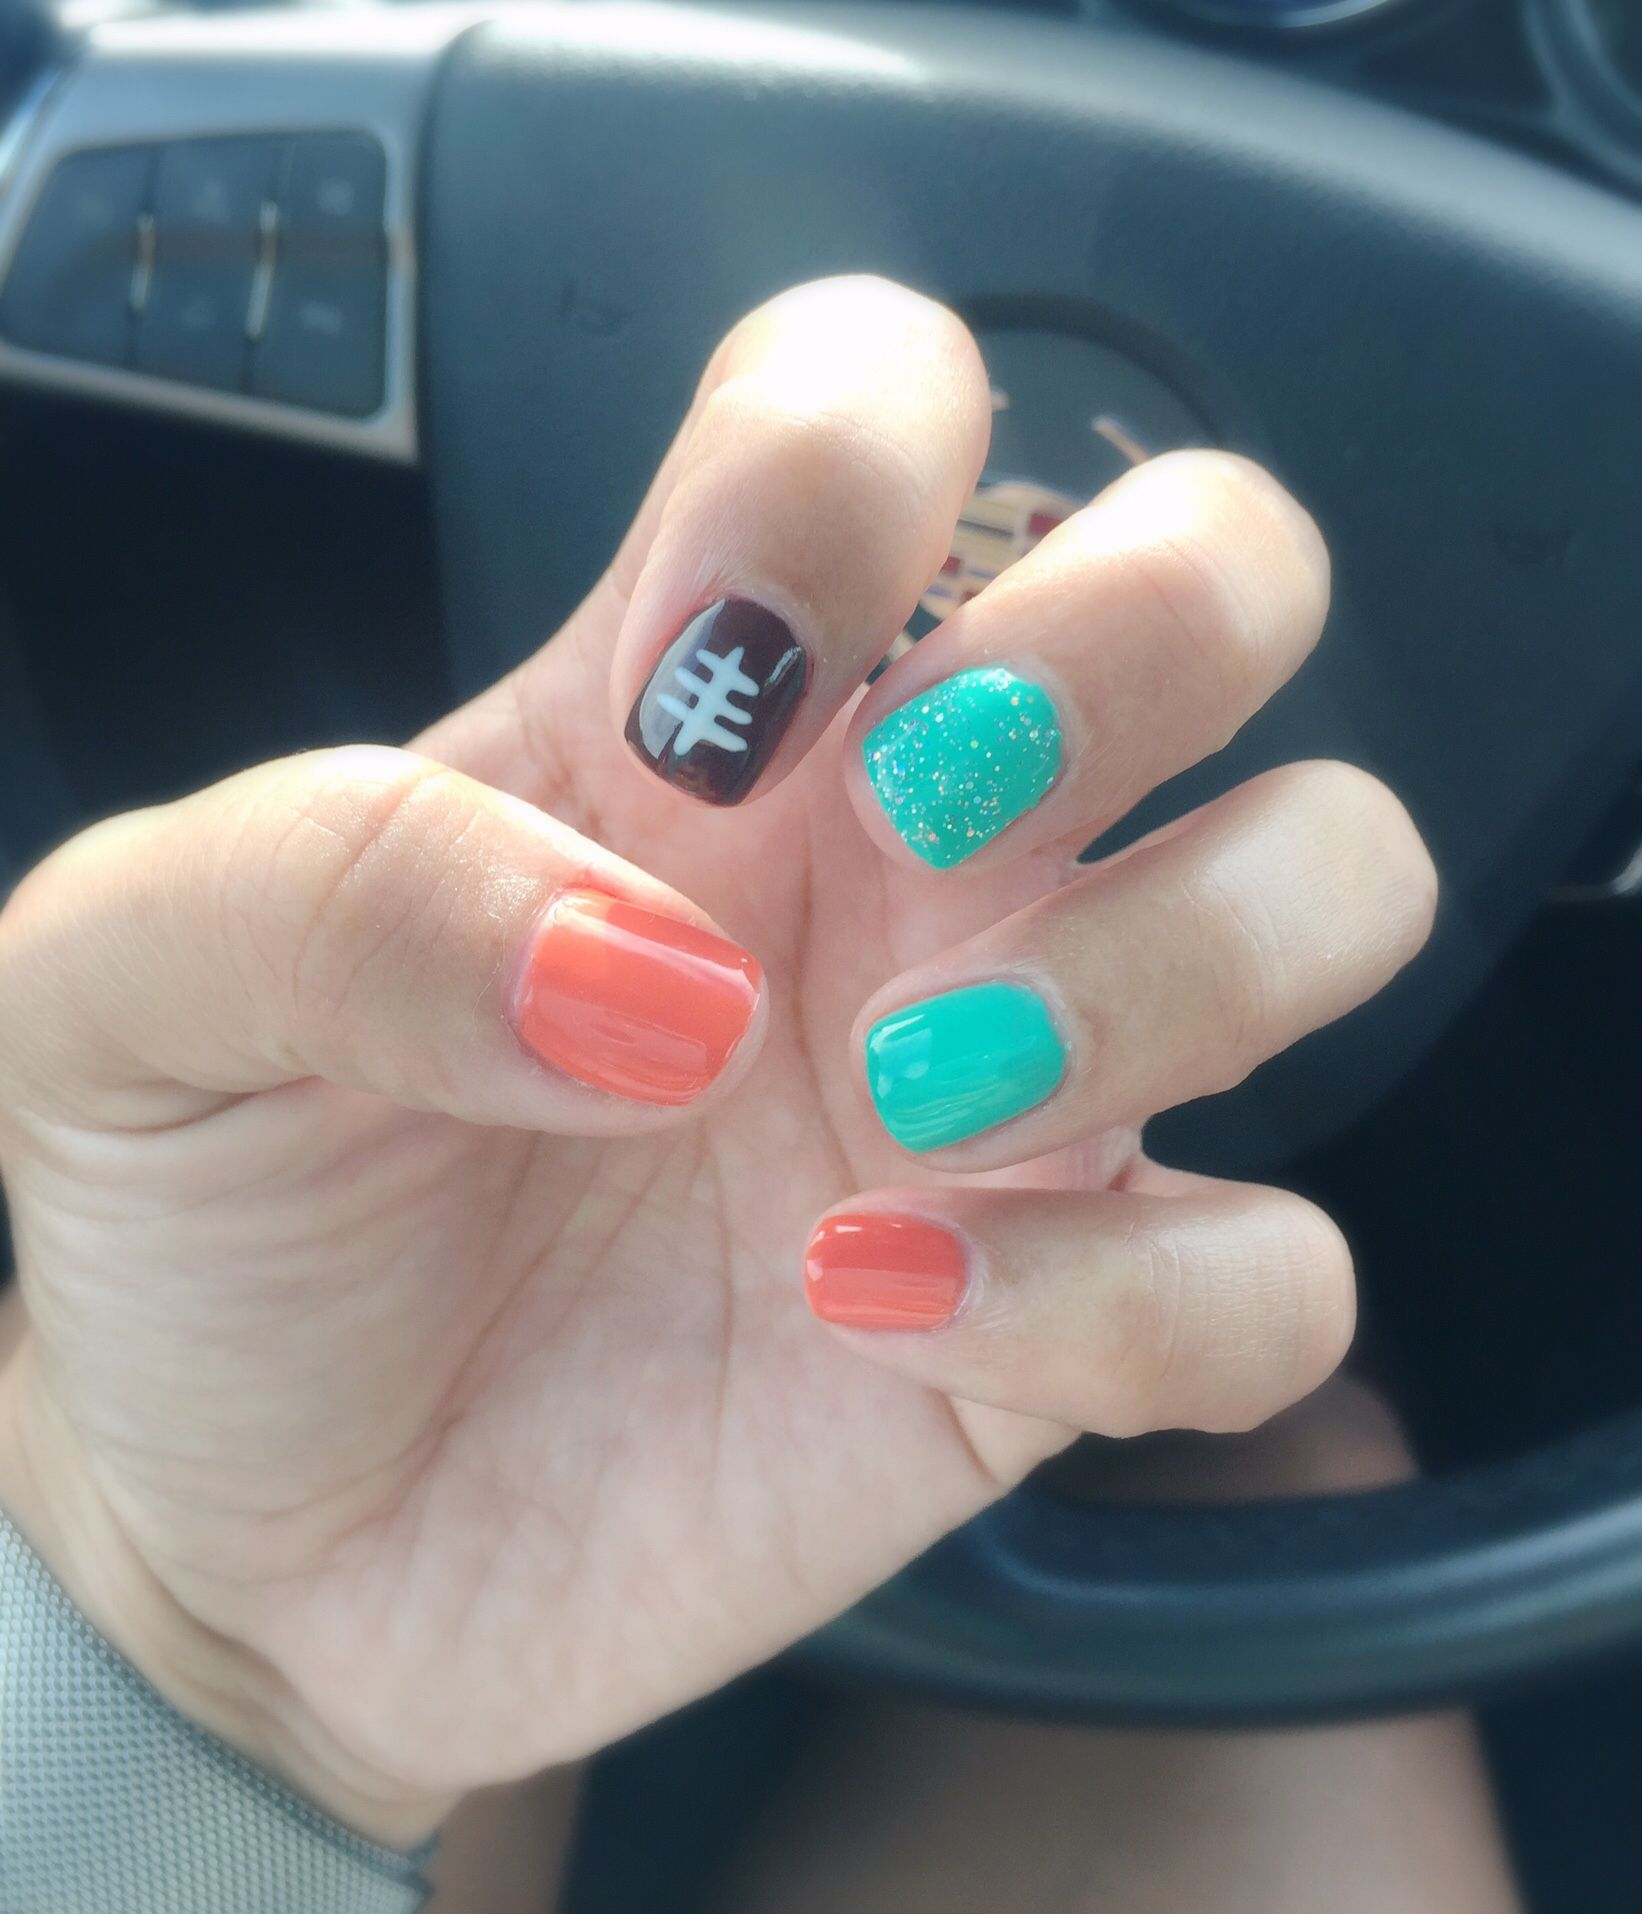 My Miami Dolphins Inspired Nails! Ready for game day! #SundayFunday ...